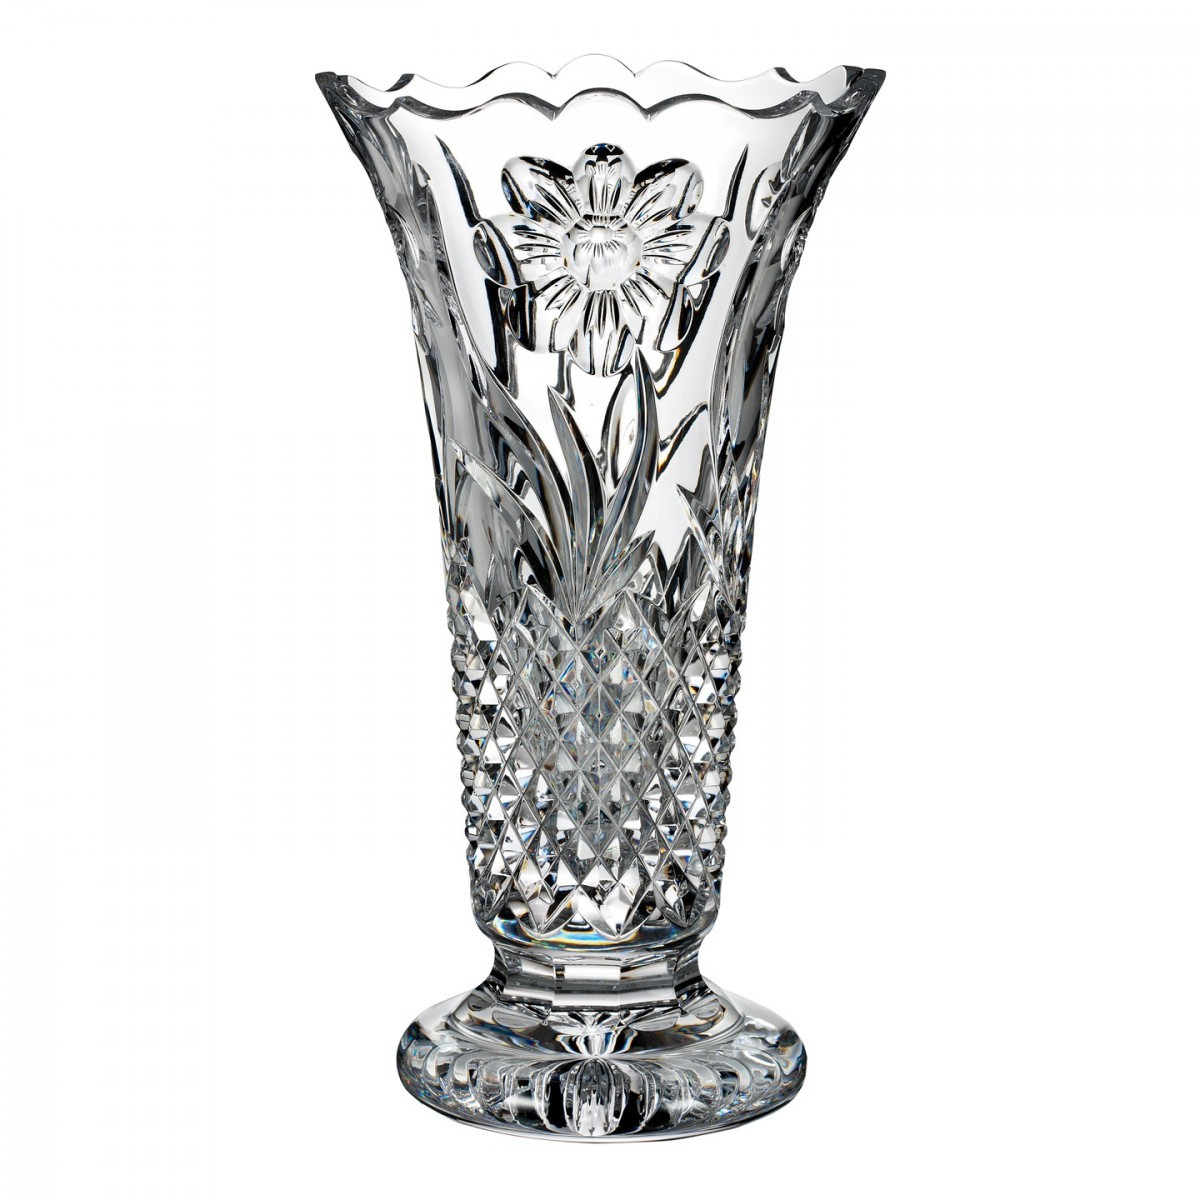 Marquis by Waterford Markham Vase Of Flora Fauna Magnolia 12in Vase House Of Waterford Crystal Us within Flora Fauna Magnolia 12in Vase